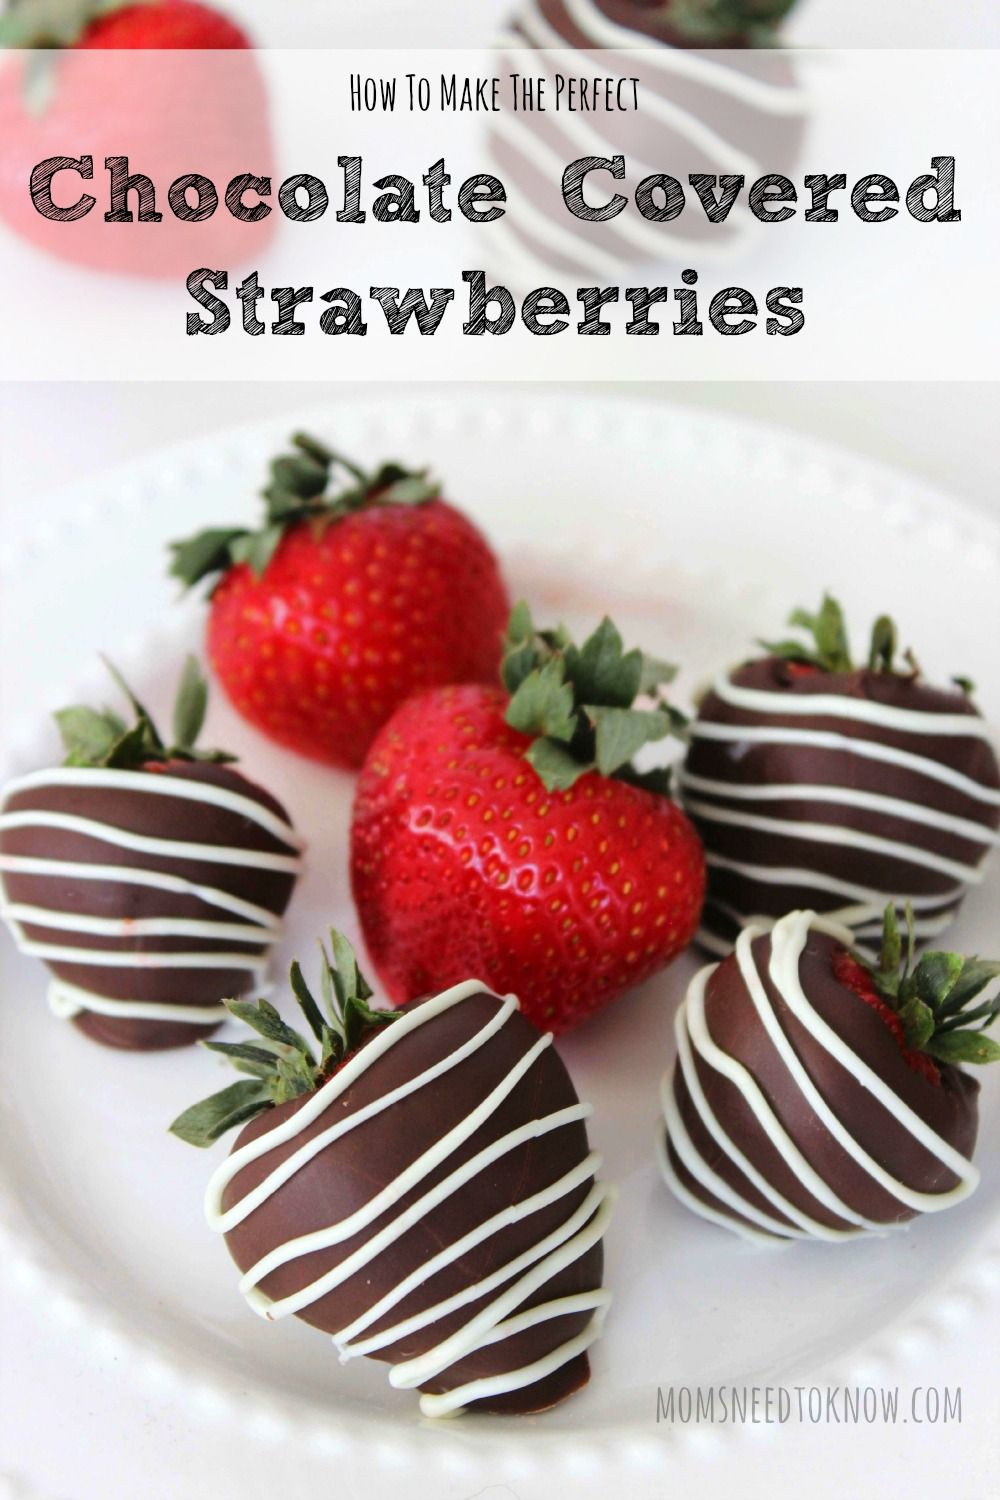 How To Make Chocolate Covered Strawberries Without Shortening